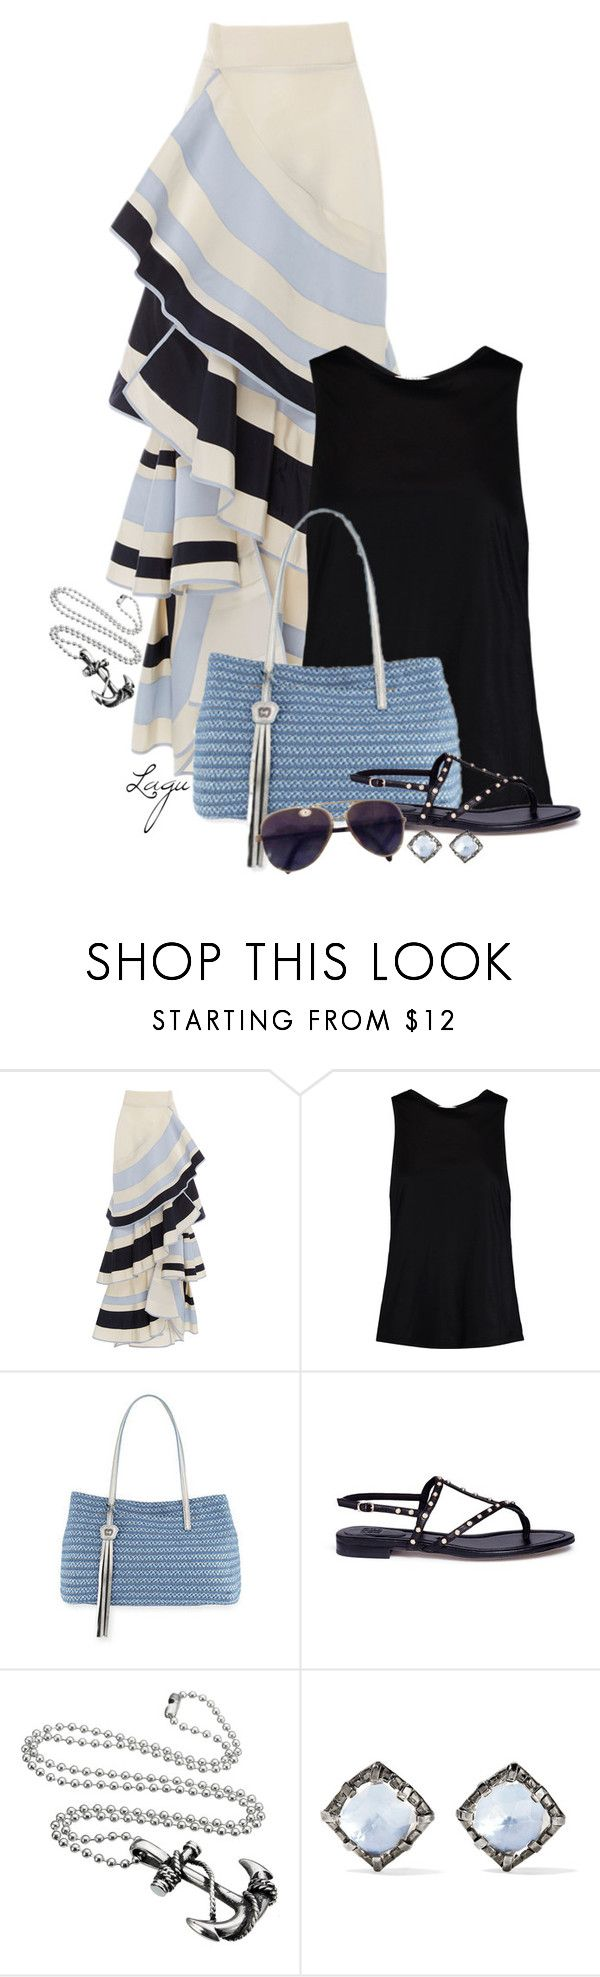 """""""By the Sea"""" by lagu on Polyvore featuring Johanna Ortiz, Halston Heritage, Eric Javits, Pedder Red, Larkspur & Hawk and Chanel"""